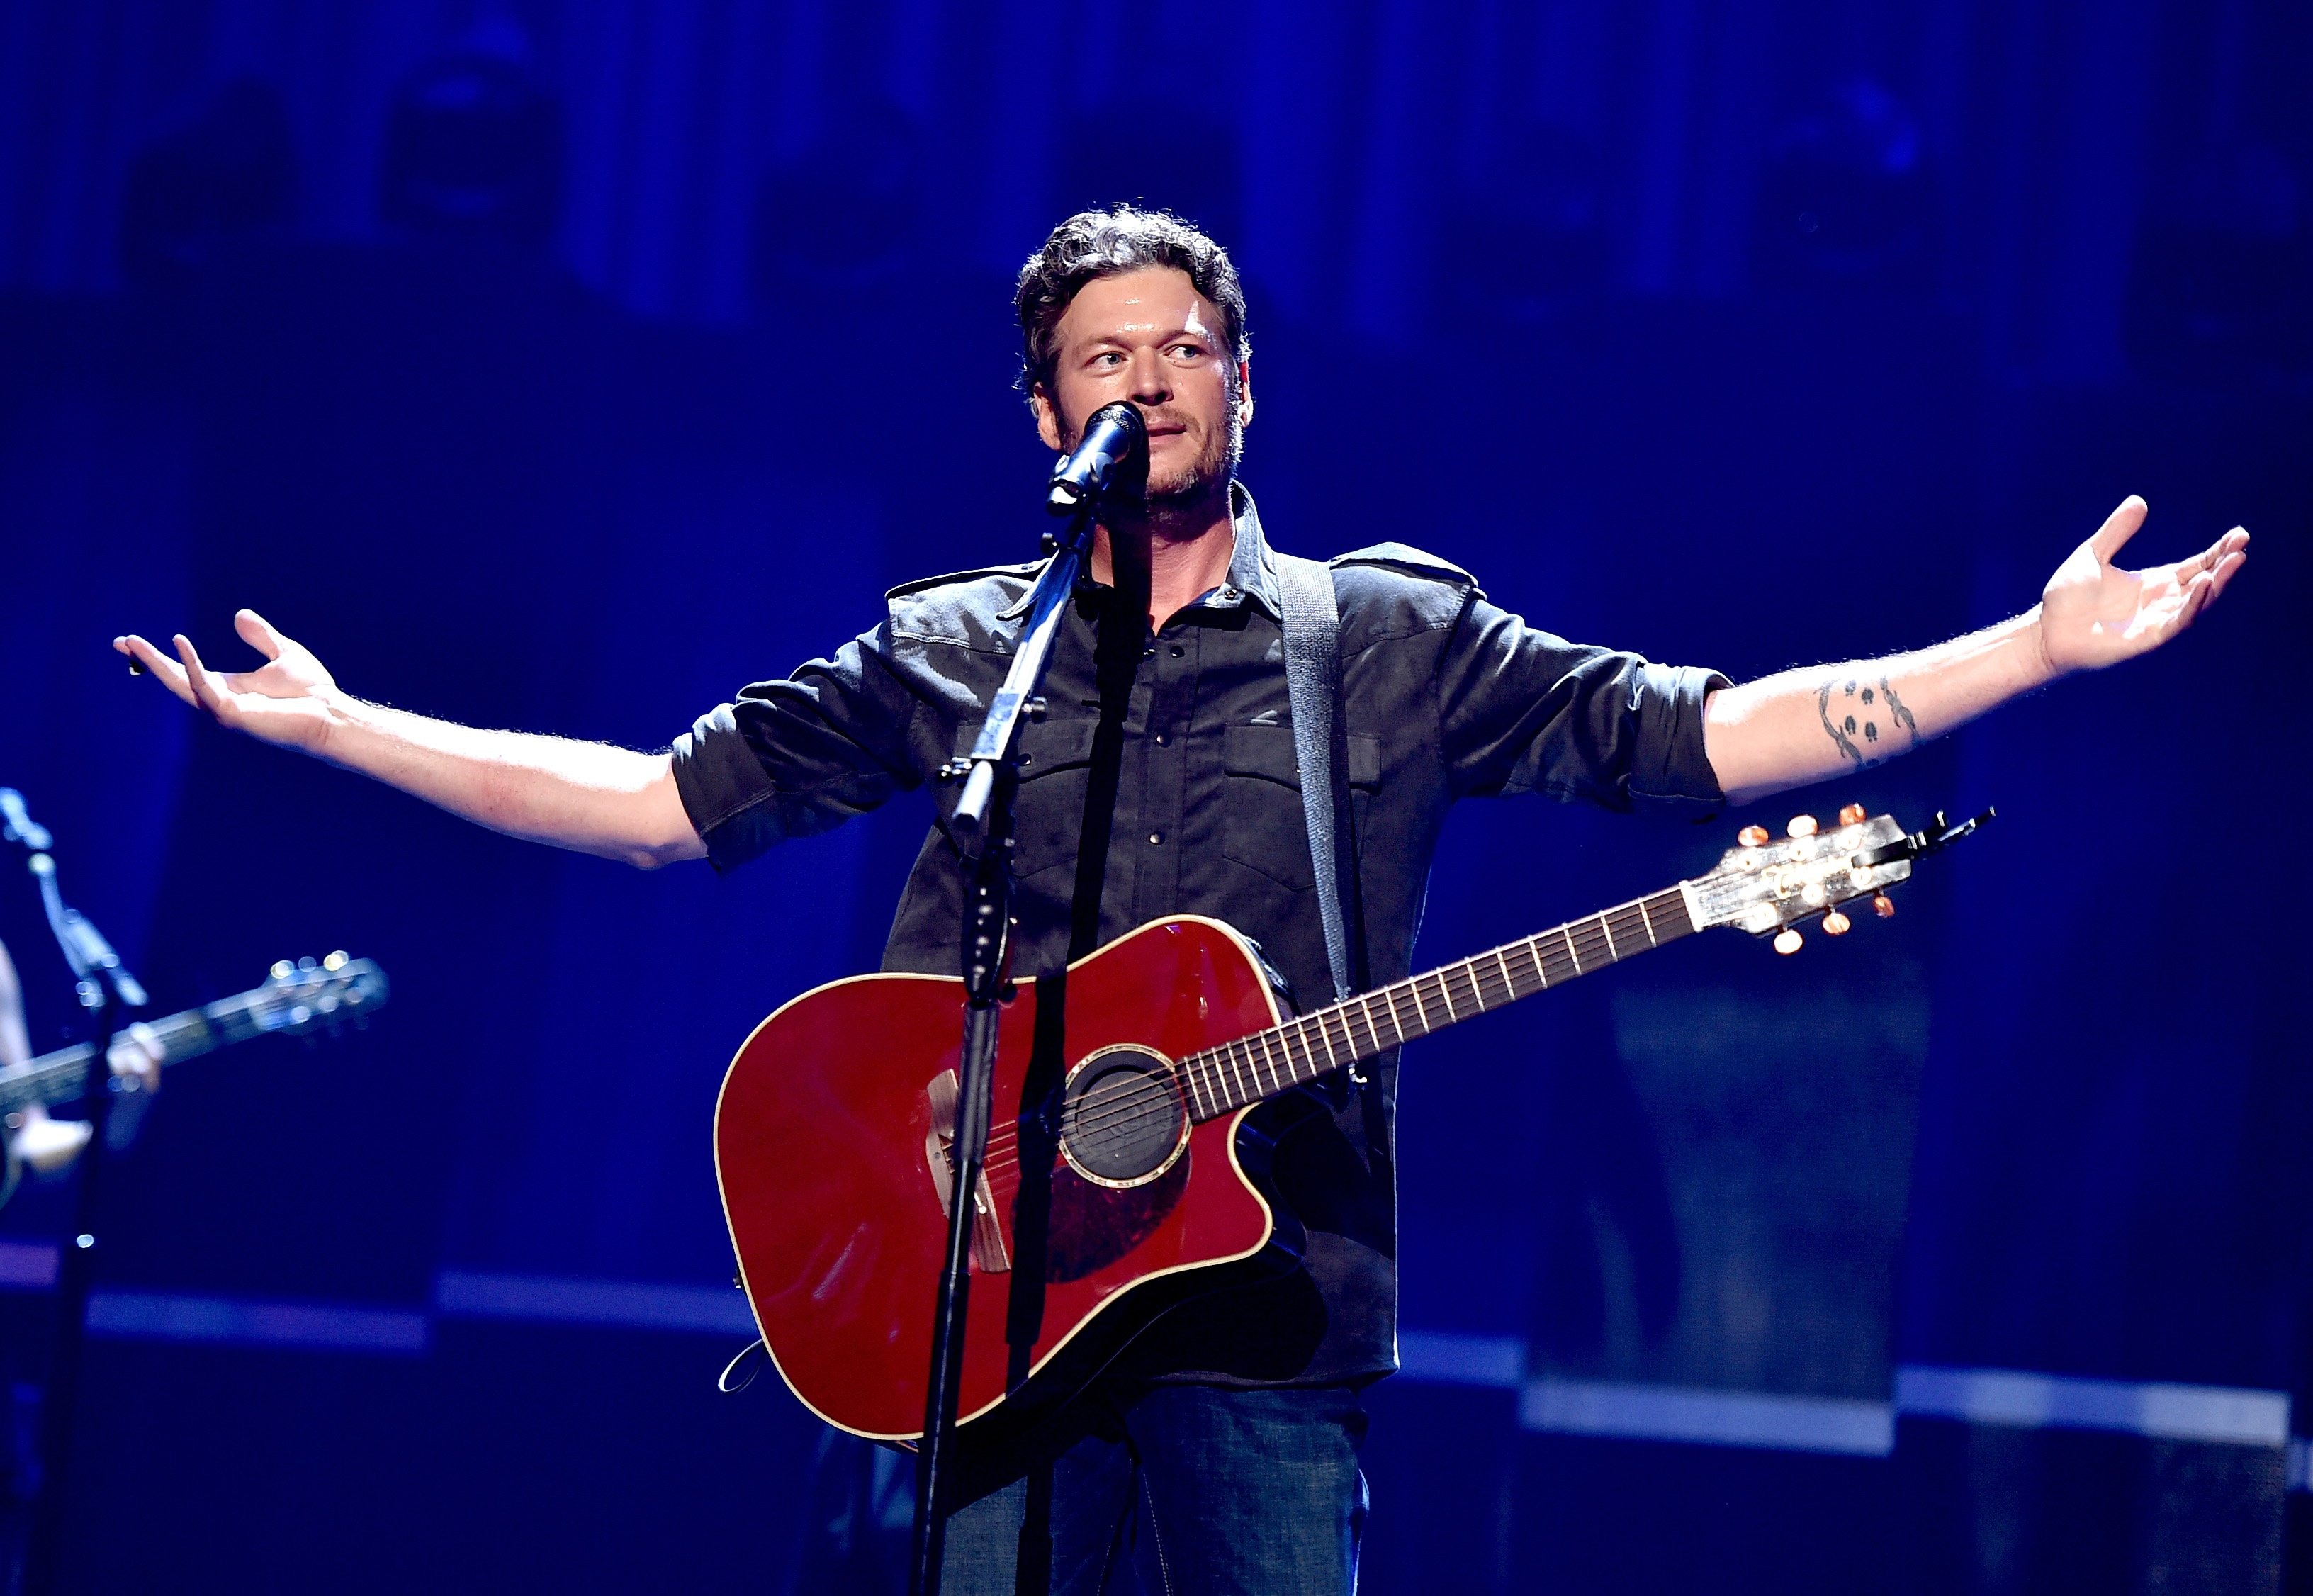 """""""Happy Anywhere"""" crooner Blake Shelton performs at the 2015 iHeartRadio Music Festival at MGM Grand Arena in Las Vegas. 